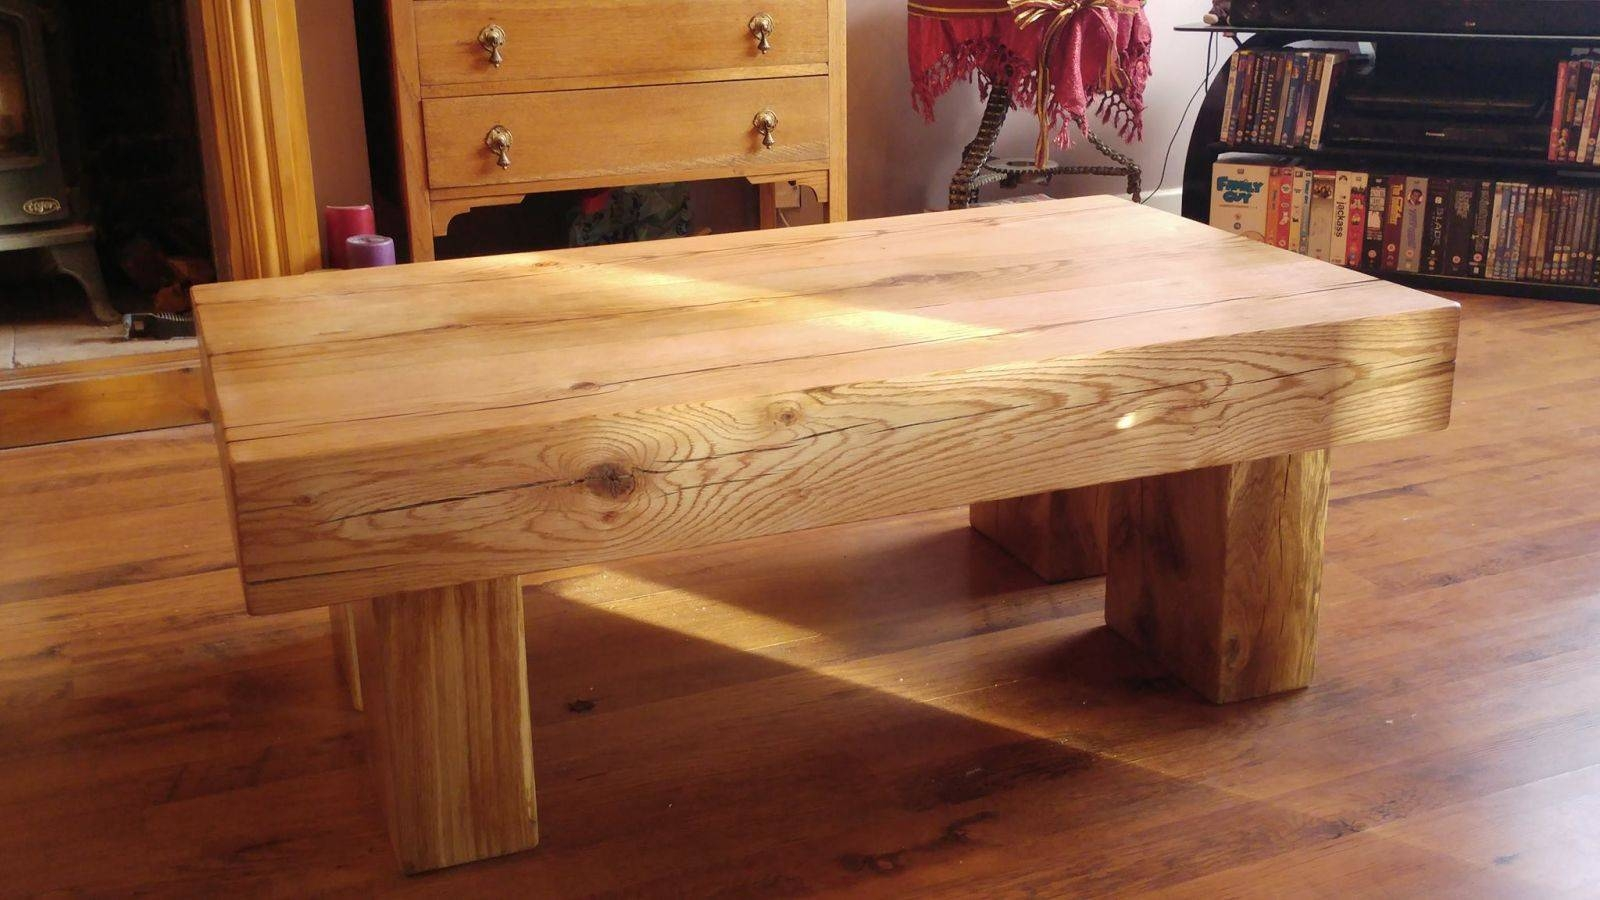 Railway Sleepers - Passionate About Railway Sleepers regarding Oak Sleeper Coffee Tables (Image 8 of 15)